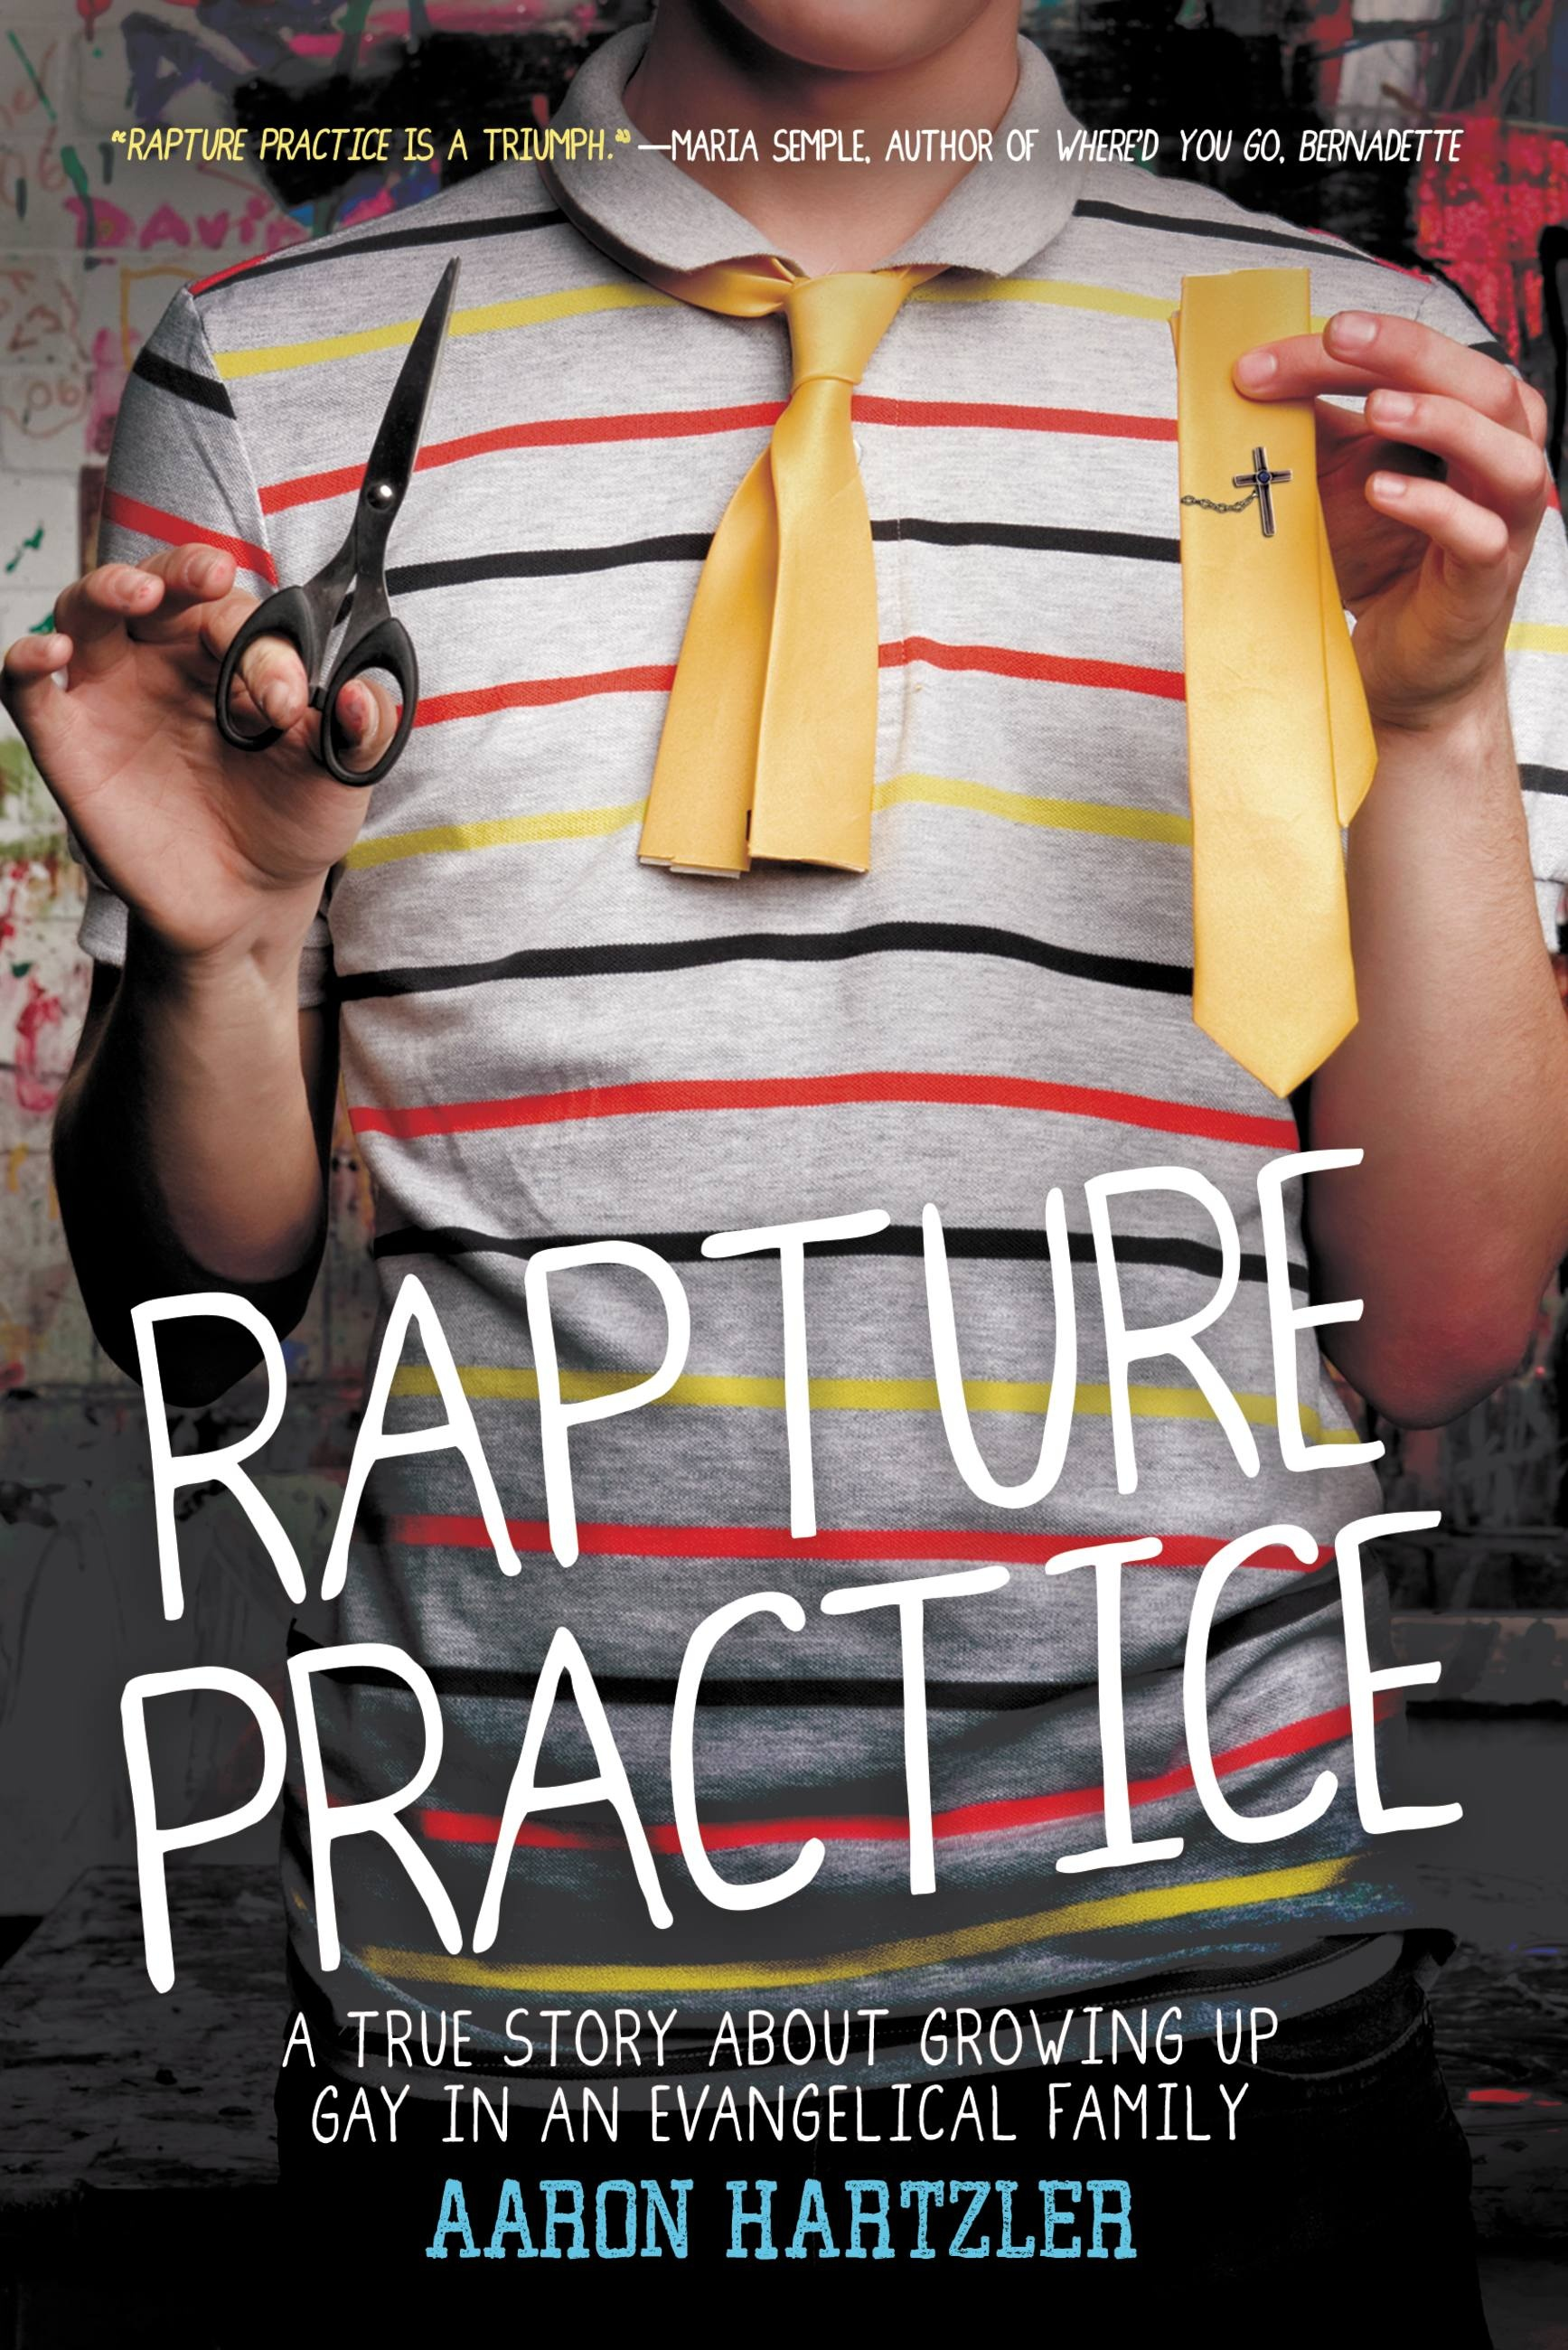 Rapture Practice by Aaron Hartler